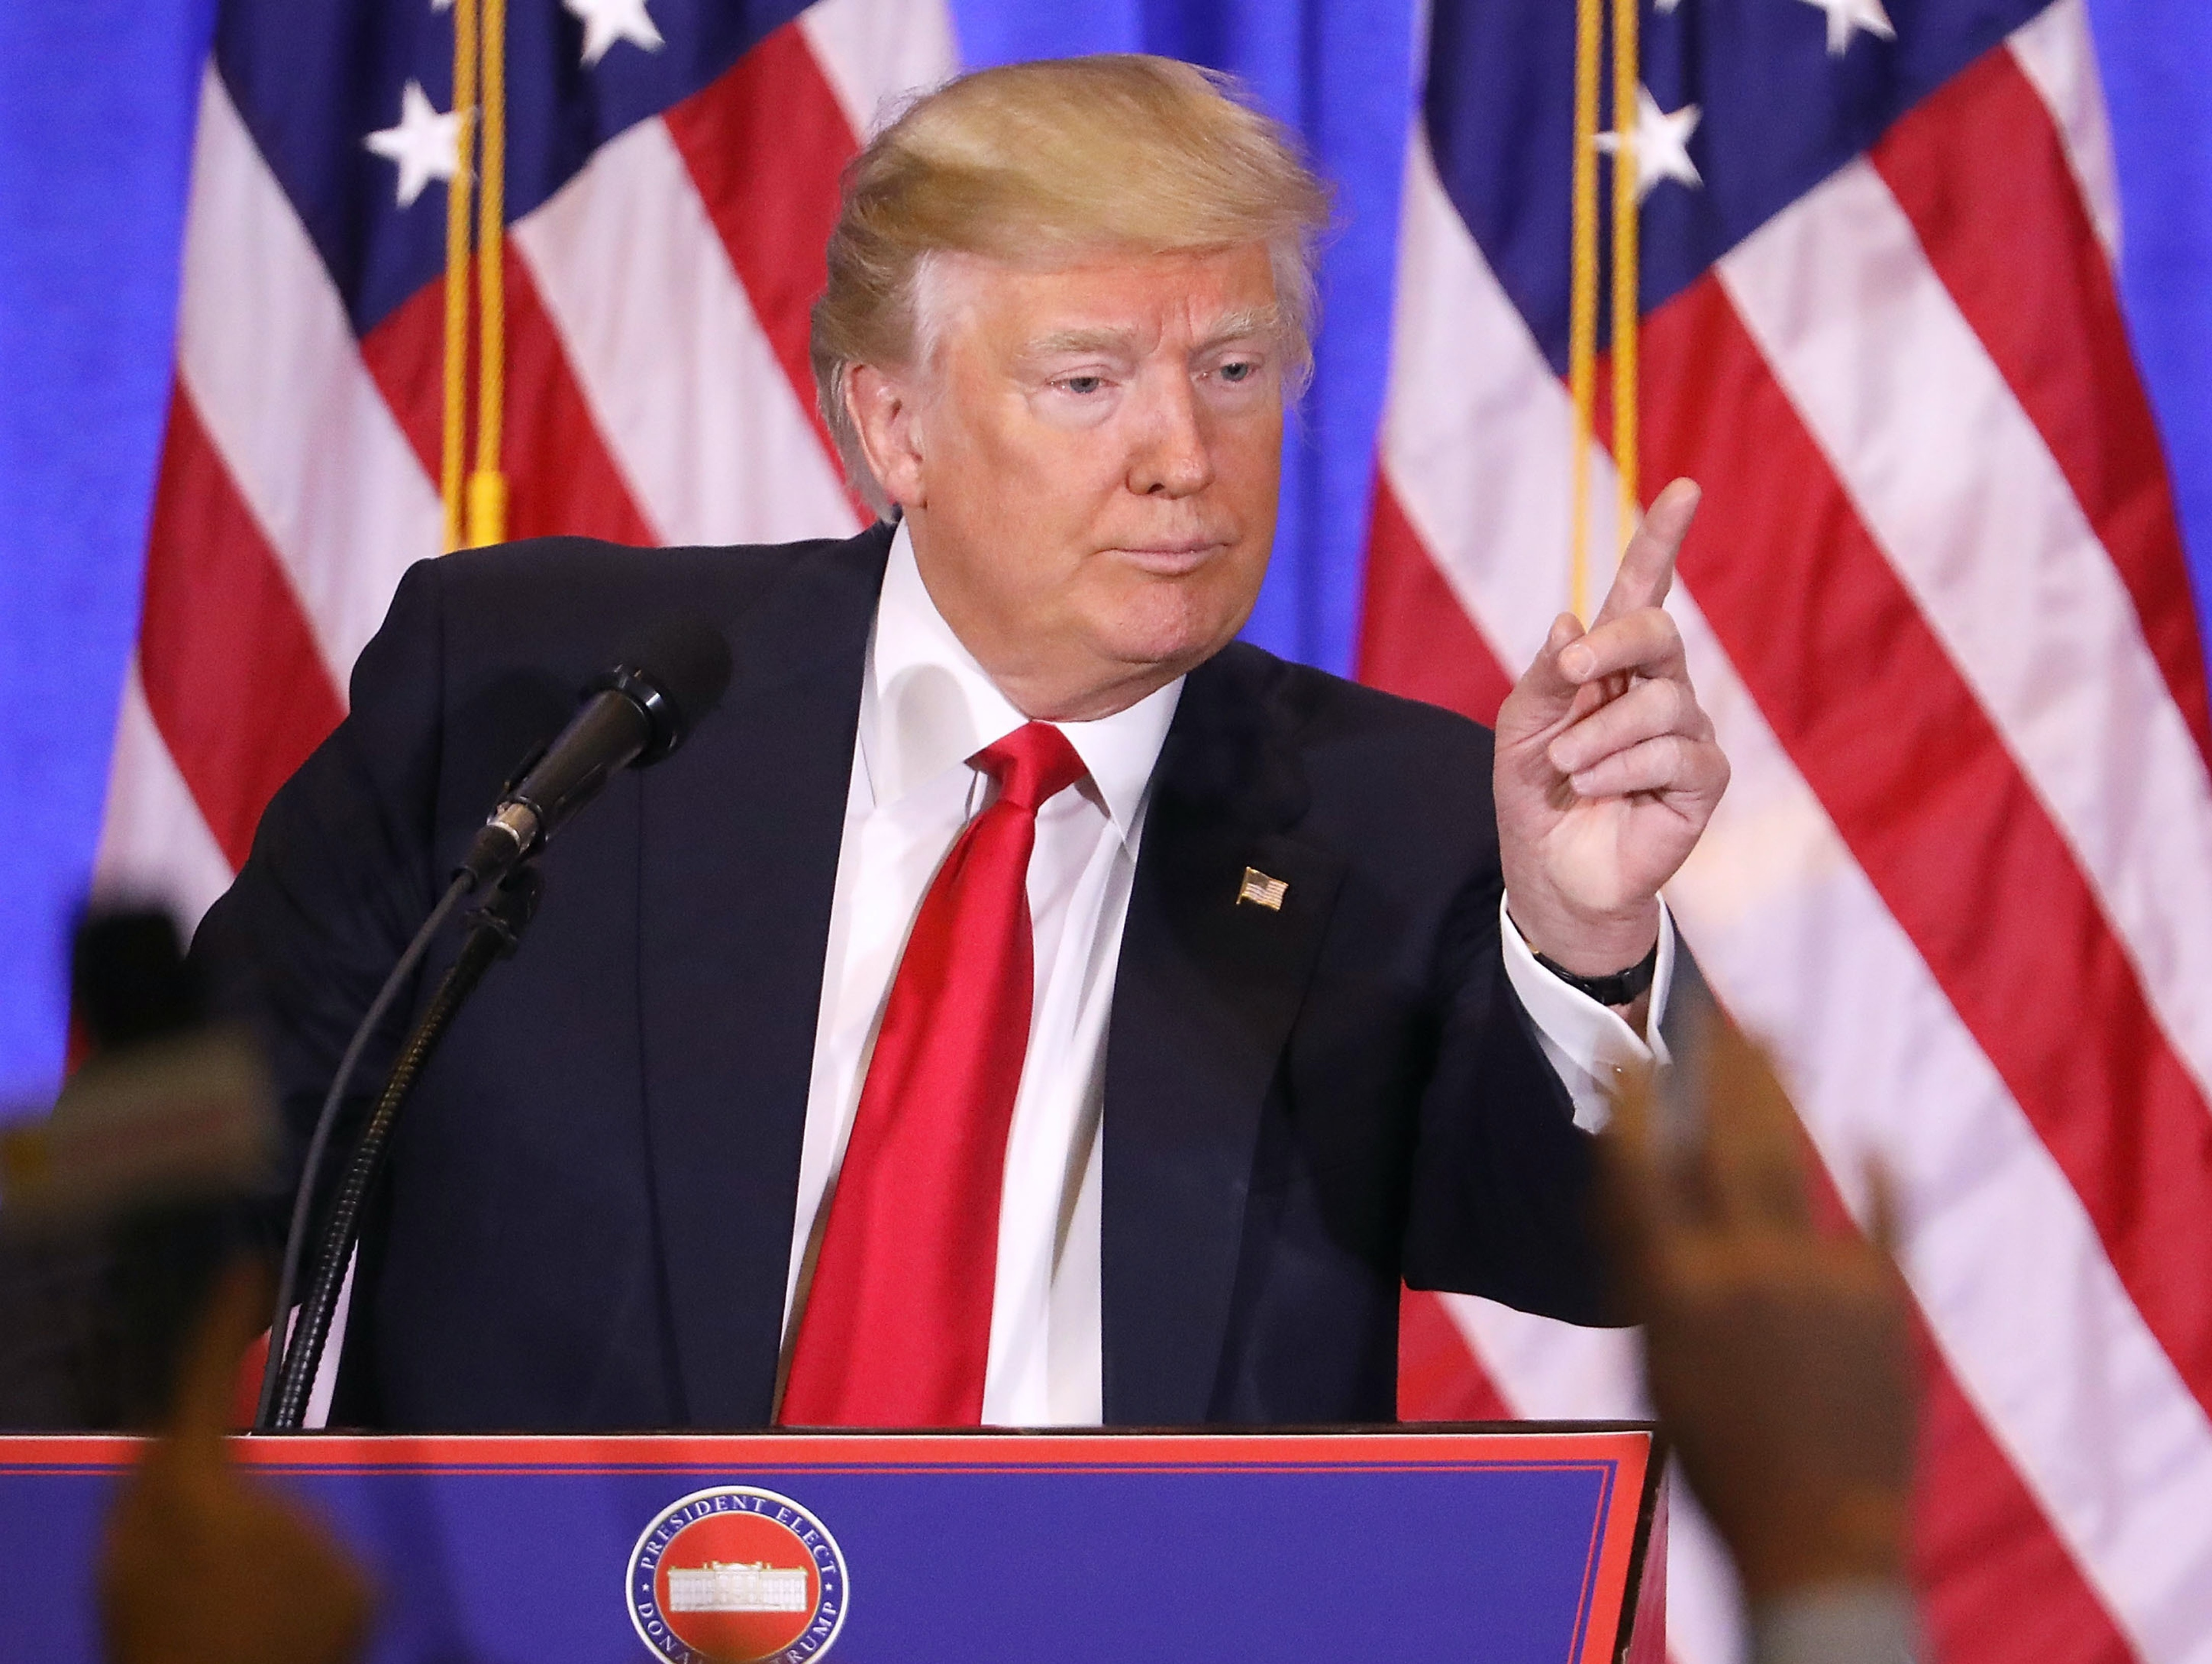 NEW YORK, NY - JANUARY 11:  President-elect Donald Trump speaks at a news cenference at Trump Tower  on January 11, 2017 in New York City. This is Trump's first official news conference since the November elections.  (Photo by Spencer Platt/Getty Images)